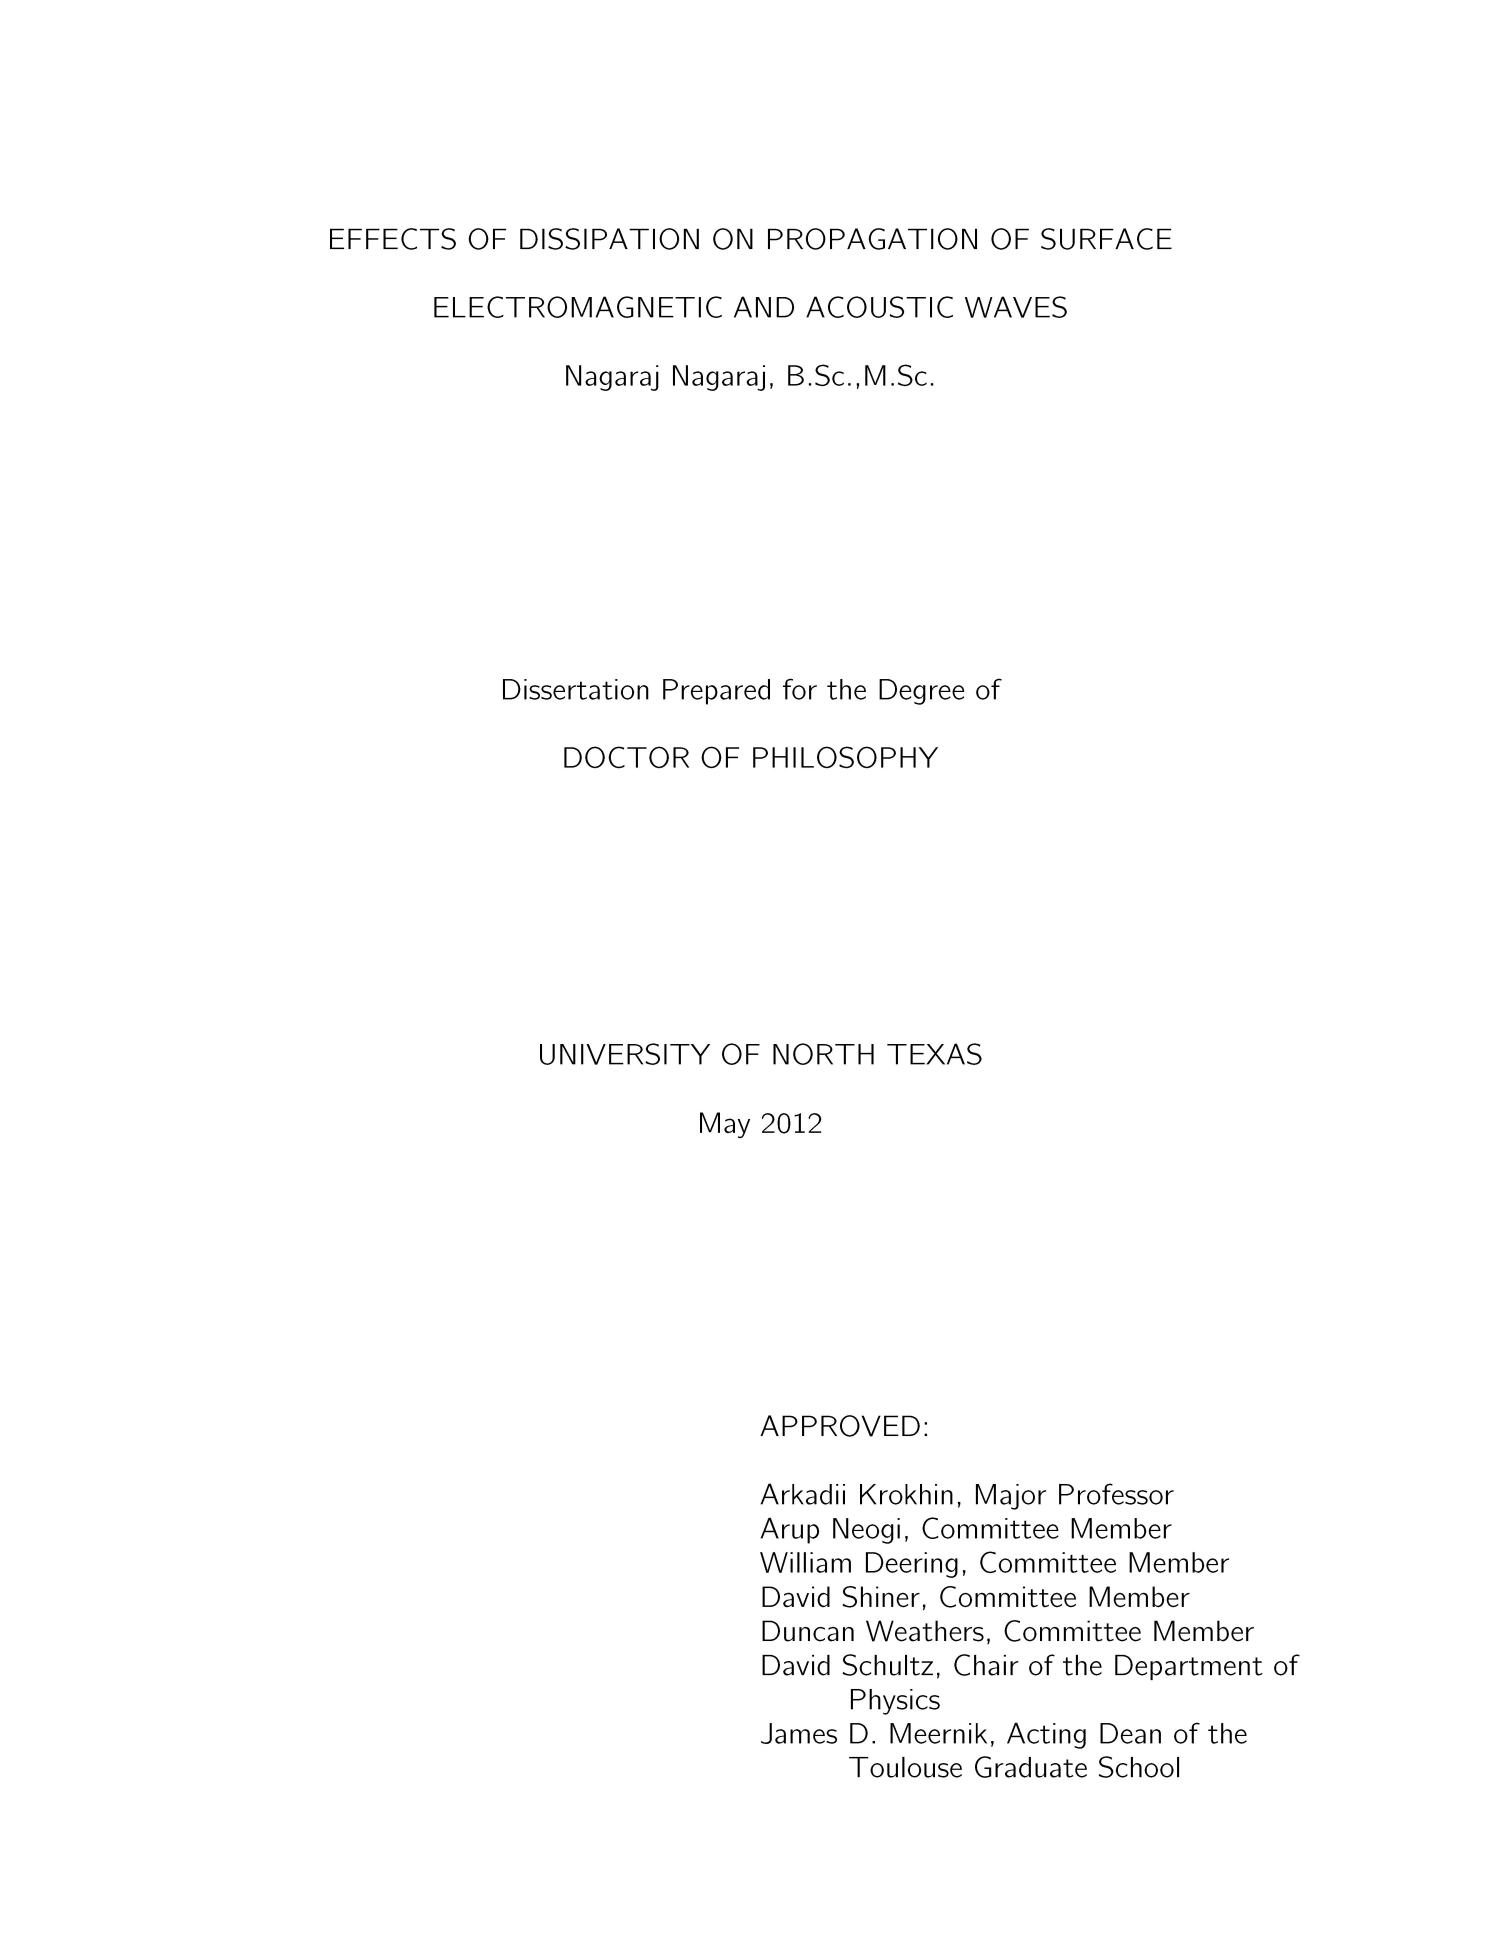 Effects of Dissipation on Propagation of Surface Electromagnetic and Acoustic Waves                                                                                                      Title Page